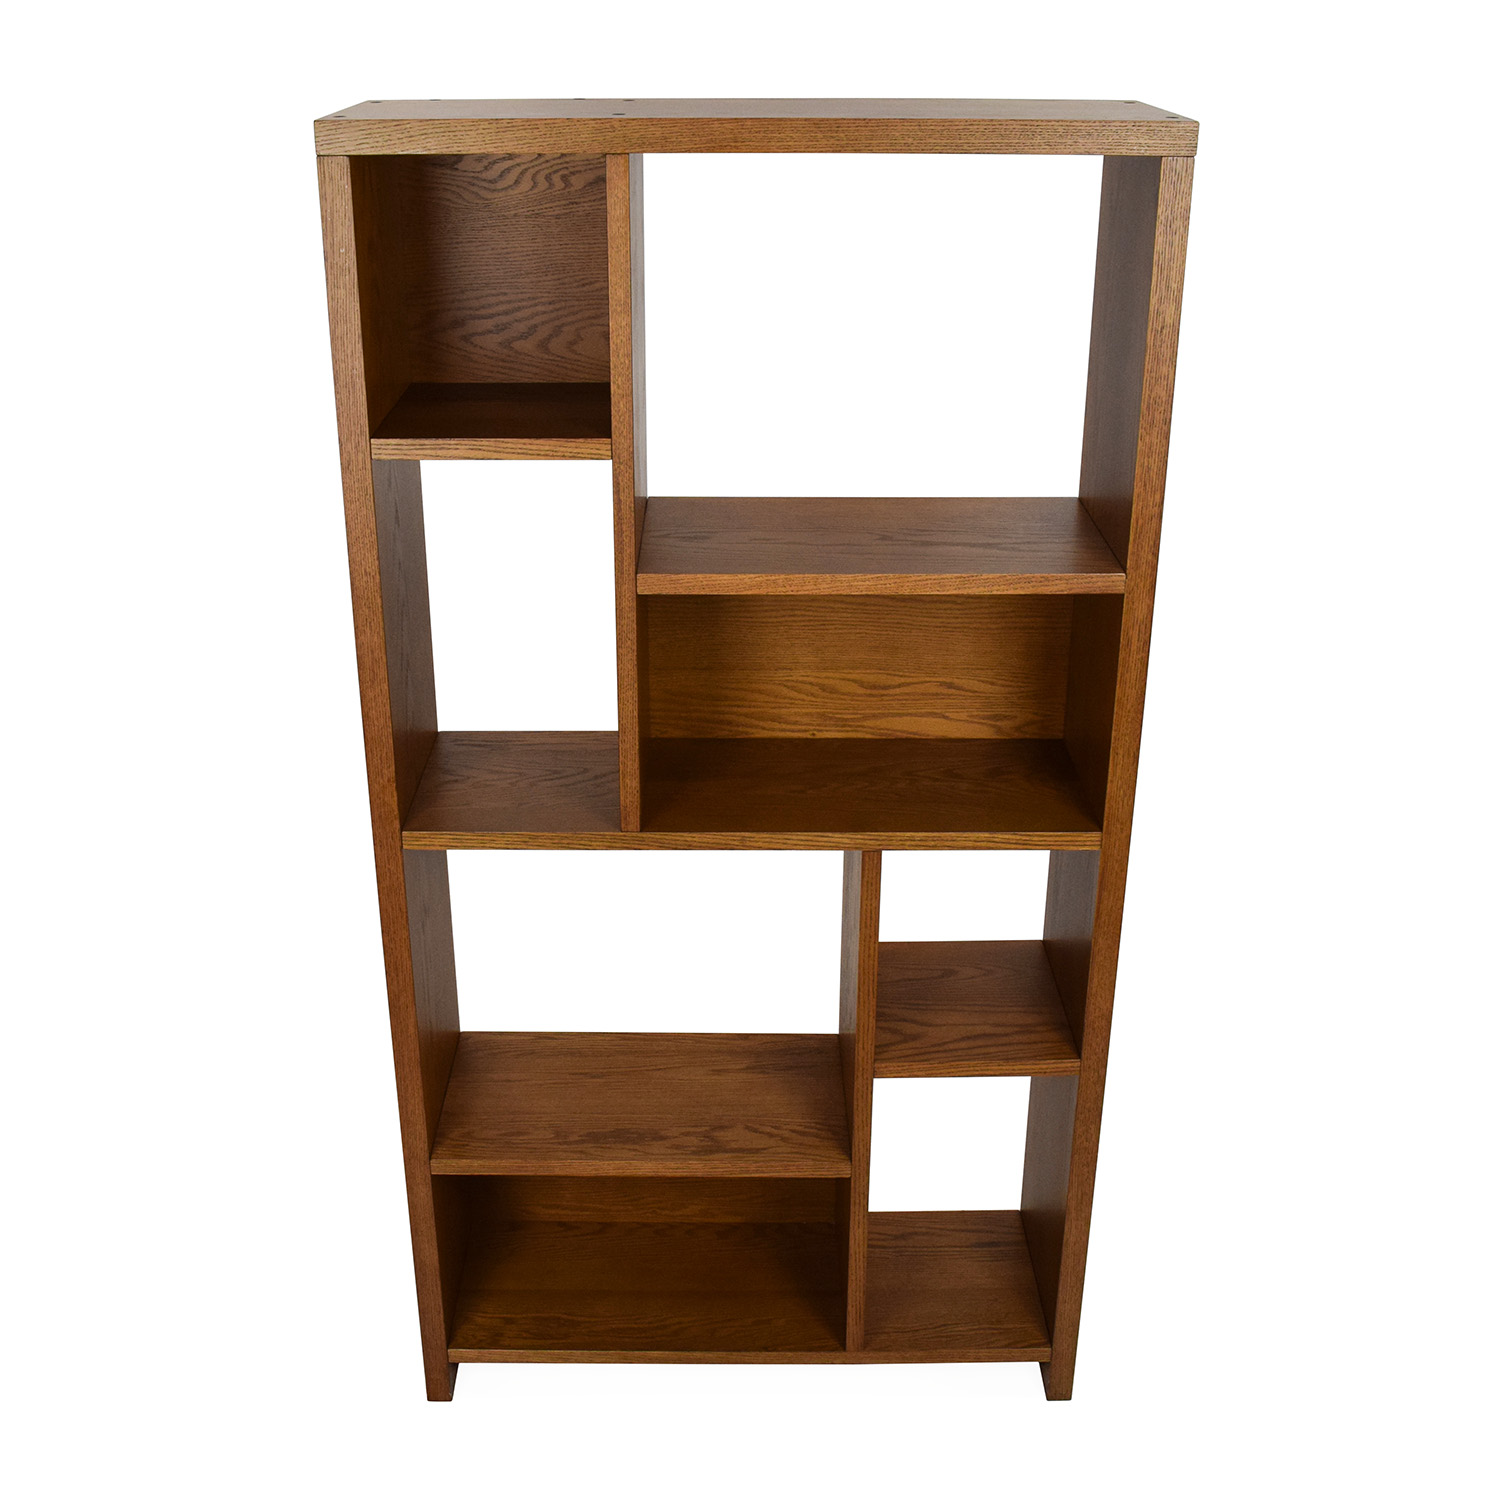 buy West Elm Geometric Shelving Unit West Elm Bookcases & Shelving